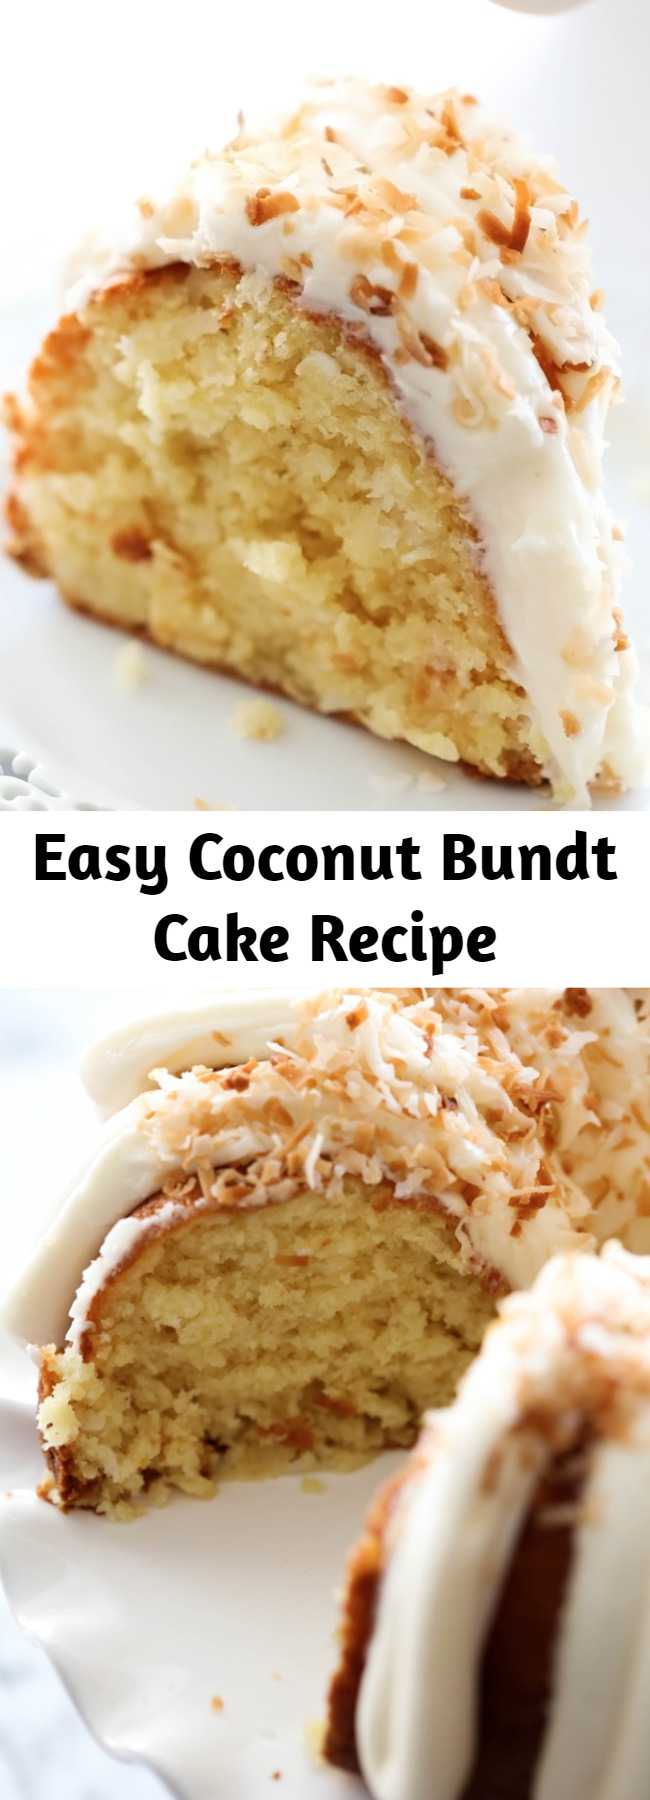 Easy Coconut Bundt Cake Recipe - This is an incredibly moist cake loaded with coconut flavor! The Cream Cheese Frosting on top is the perfect pairing. This cake with be loved by all who try it!